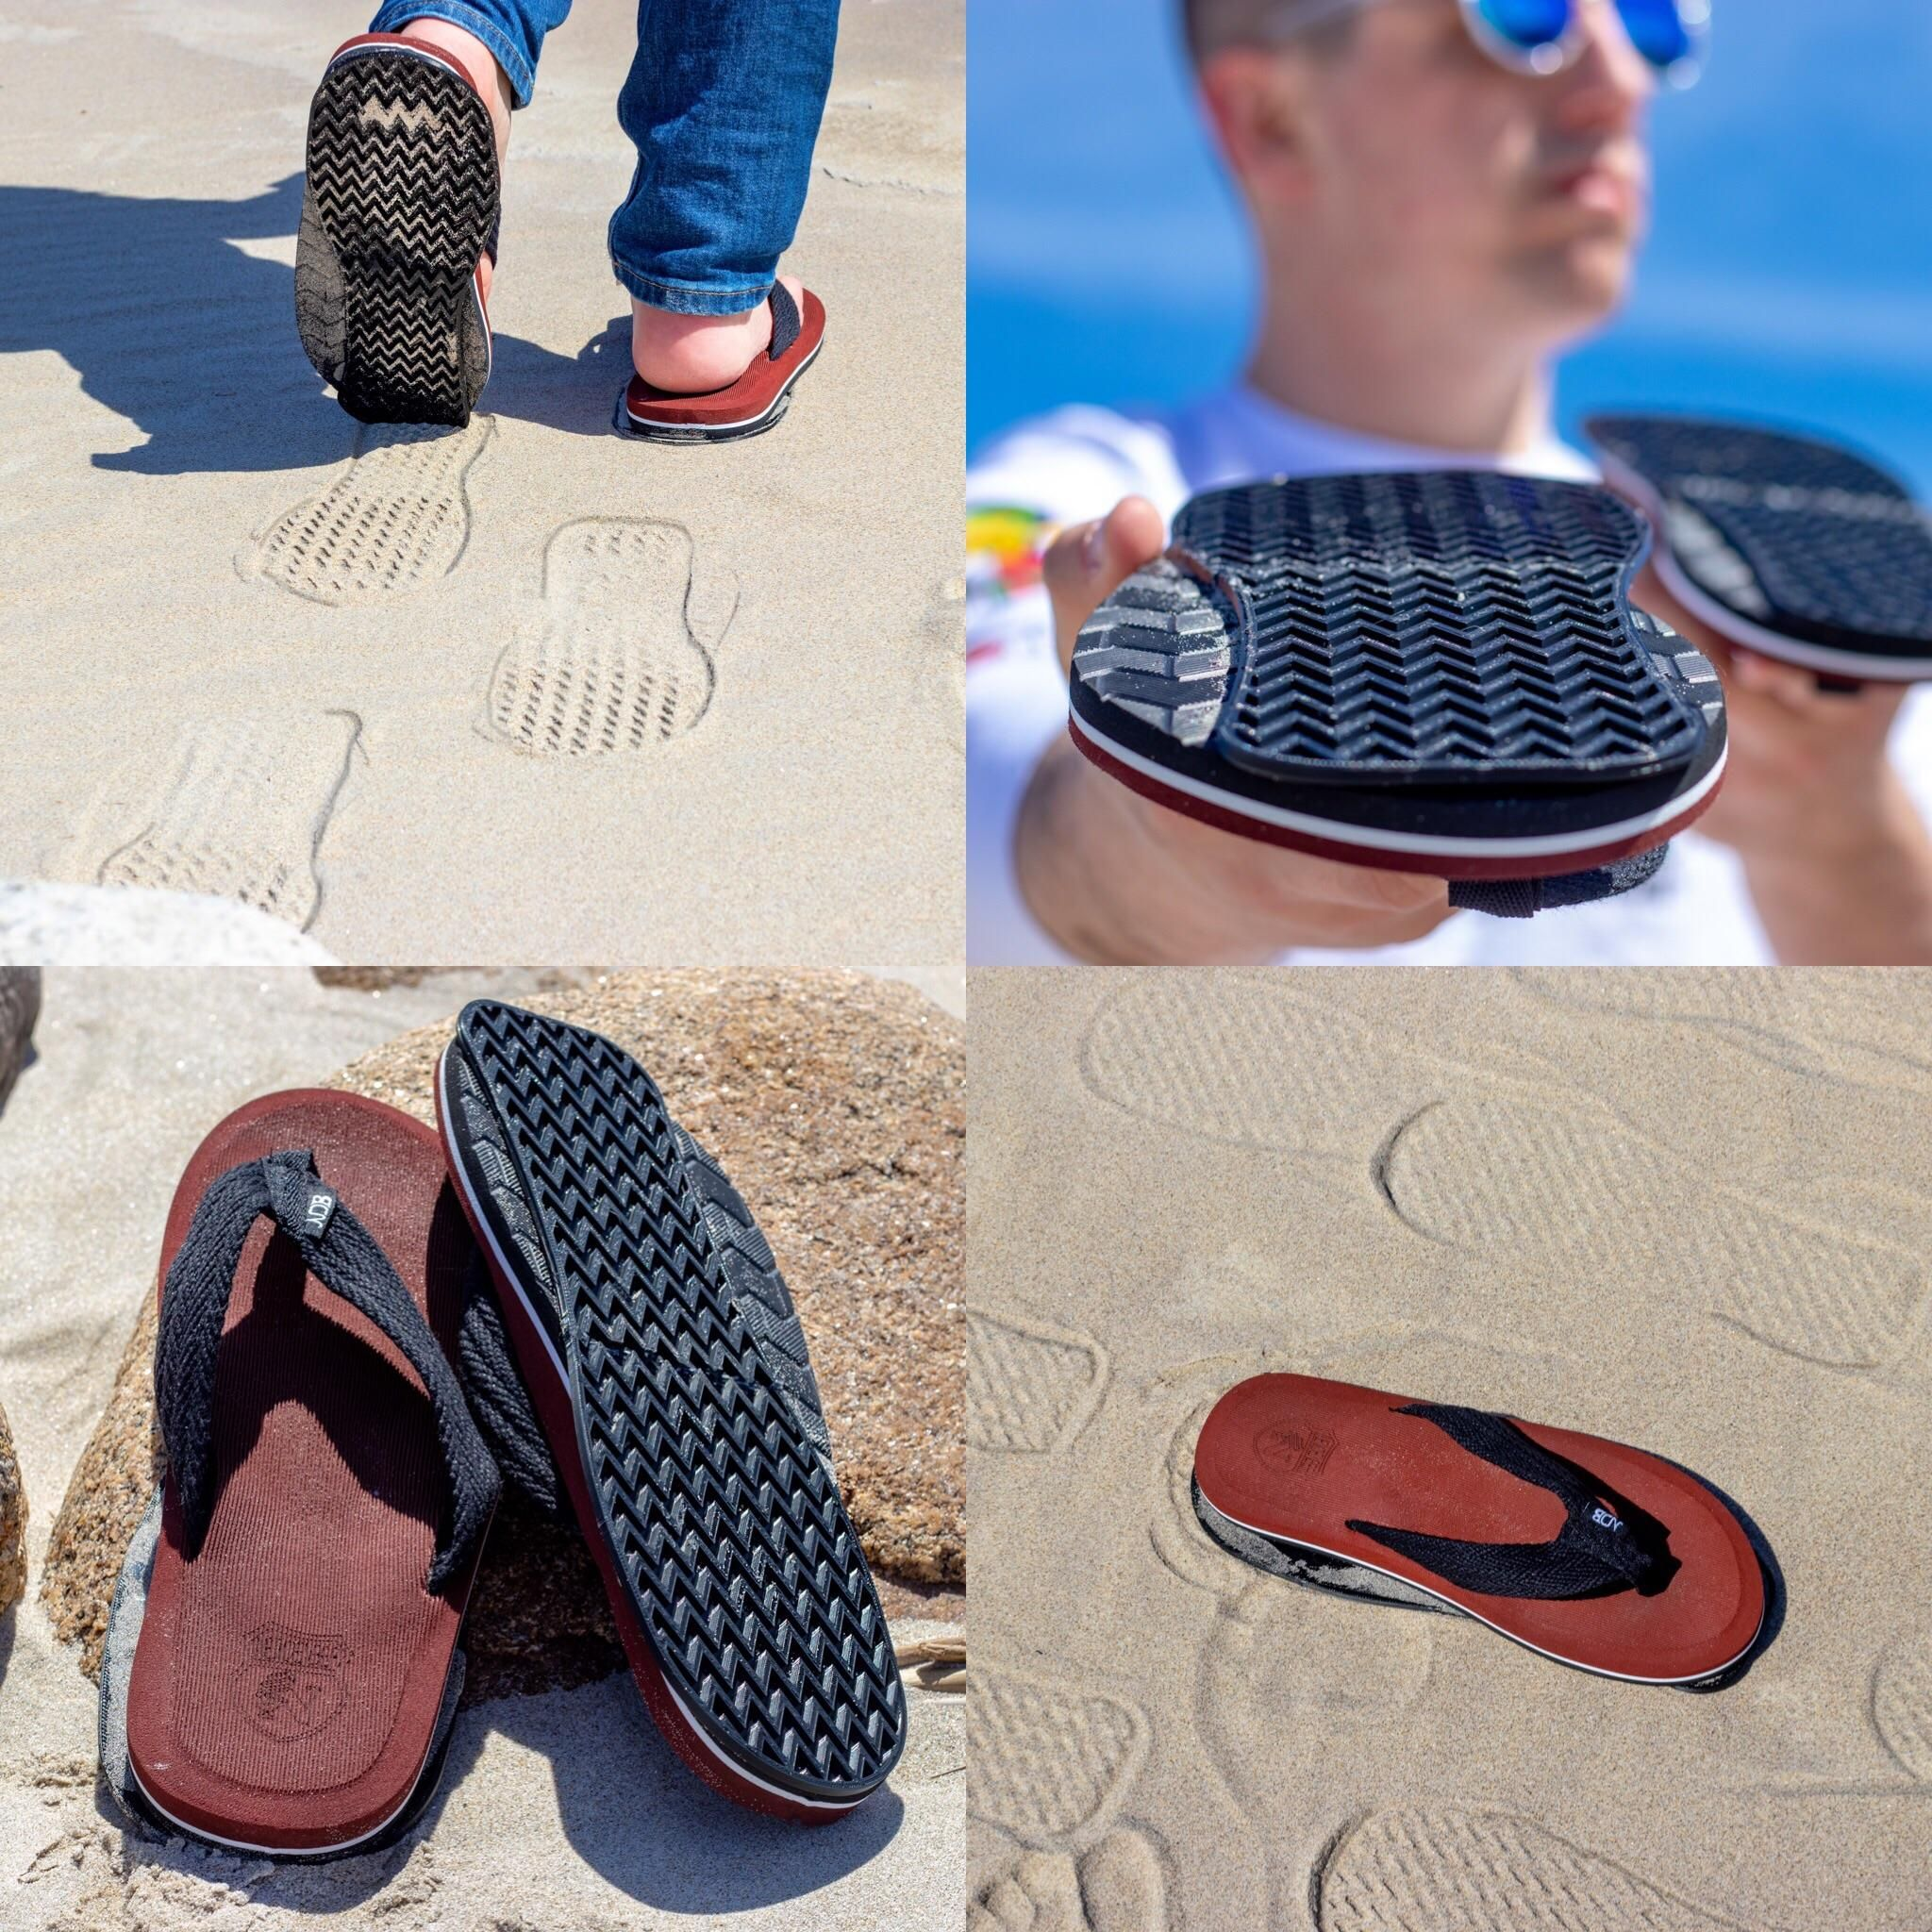 My newest fake invention is the FlopFlips. Sandals with reverse soles so it looks like you were walking the opposite direction on the beach. See ya later stalkers!